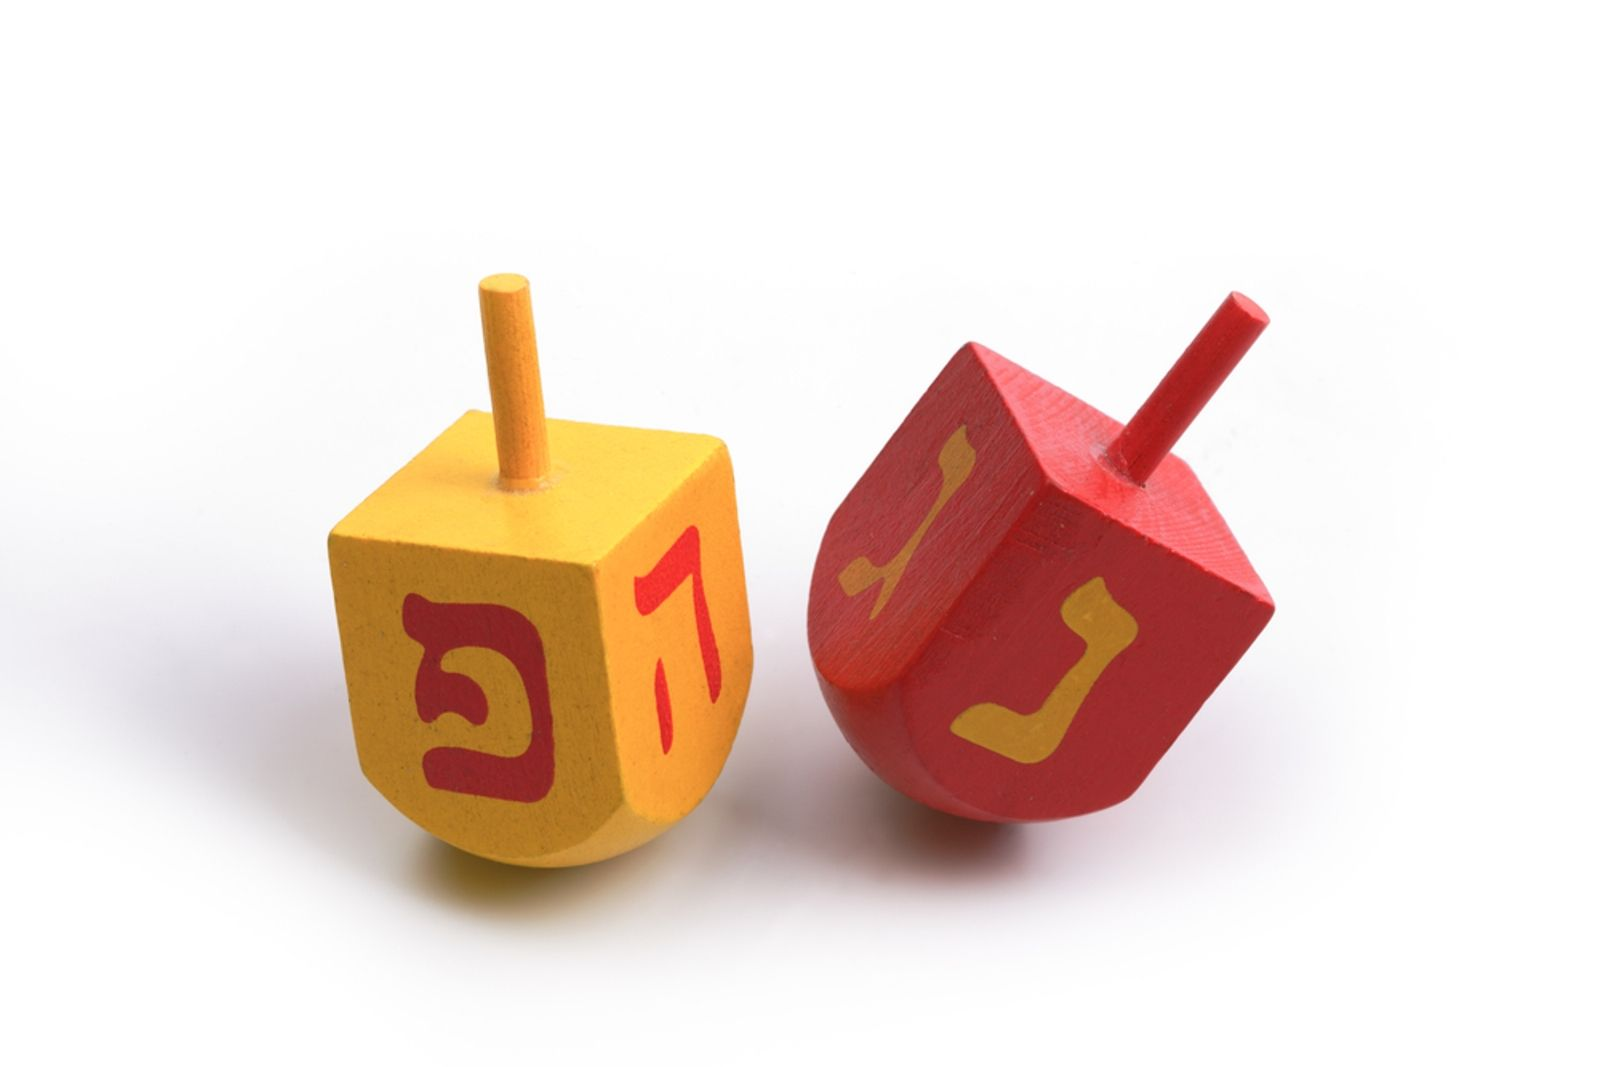 Photo of dreidels by Mordechai Meiri/Shutterstock.com